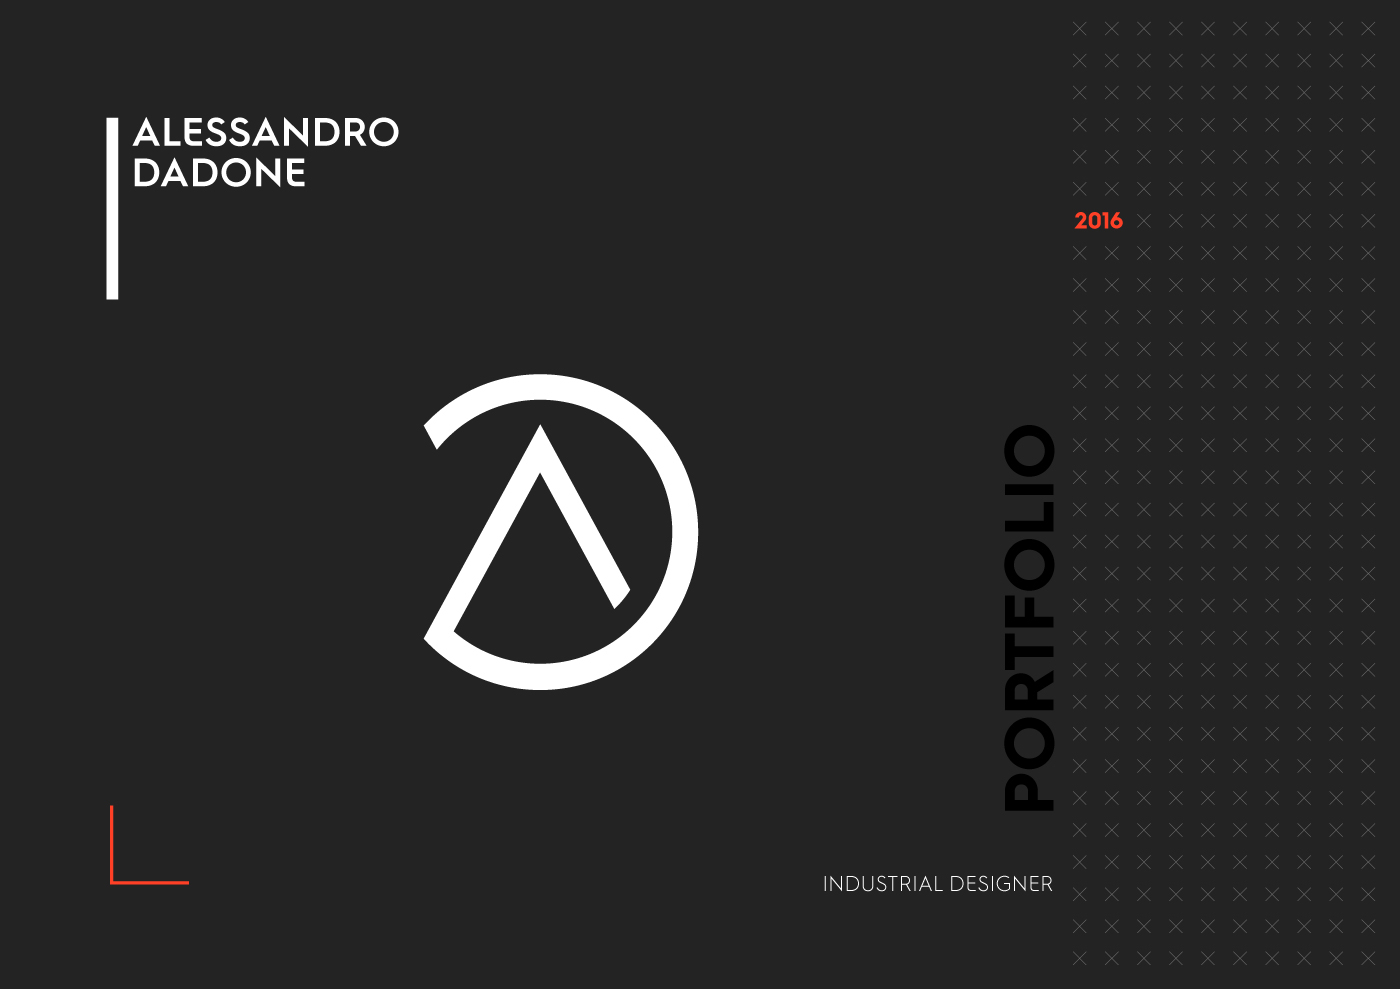 Industrial design portfolio alessandro dadone on behance for Industrial design company